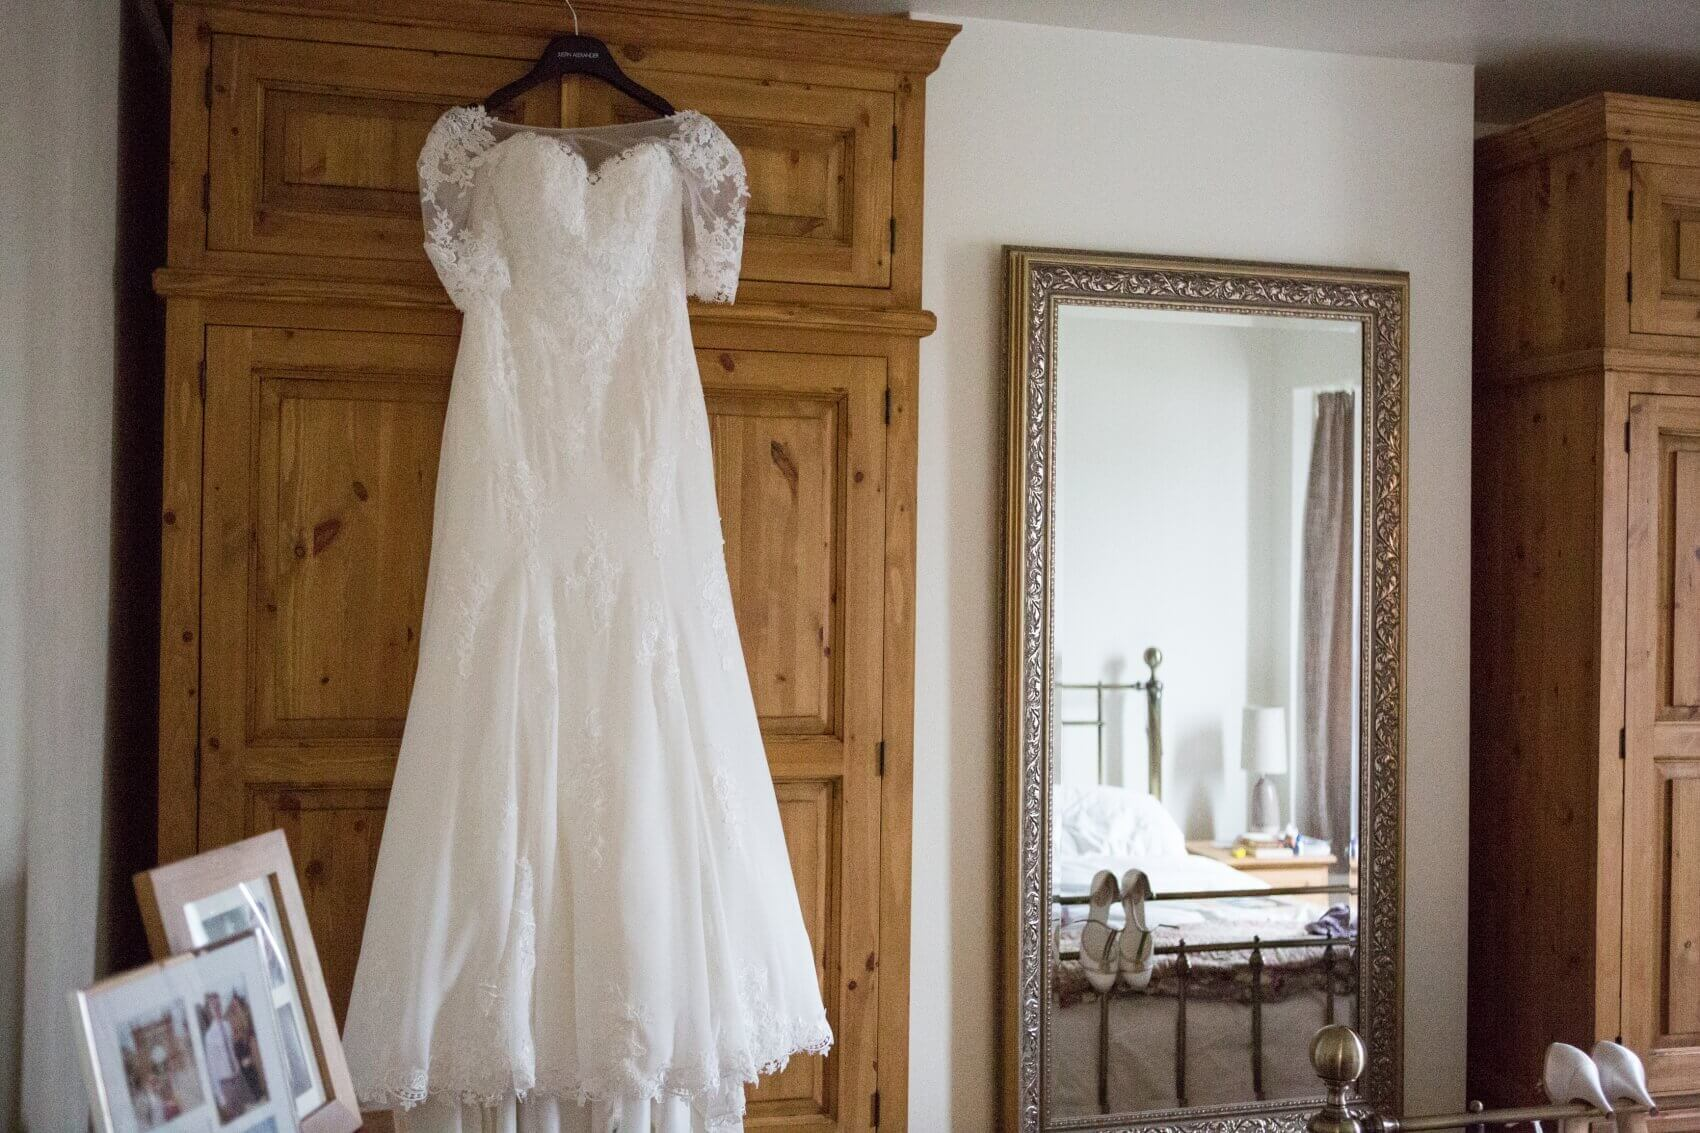 Wedding dress hanging up in the bedroom